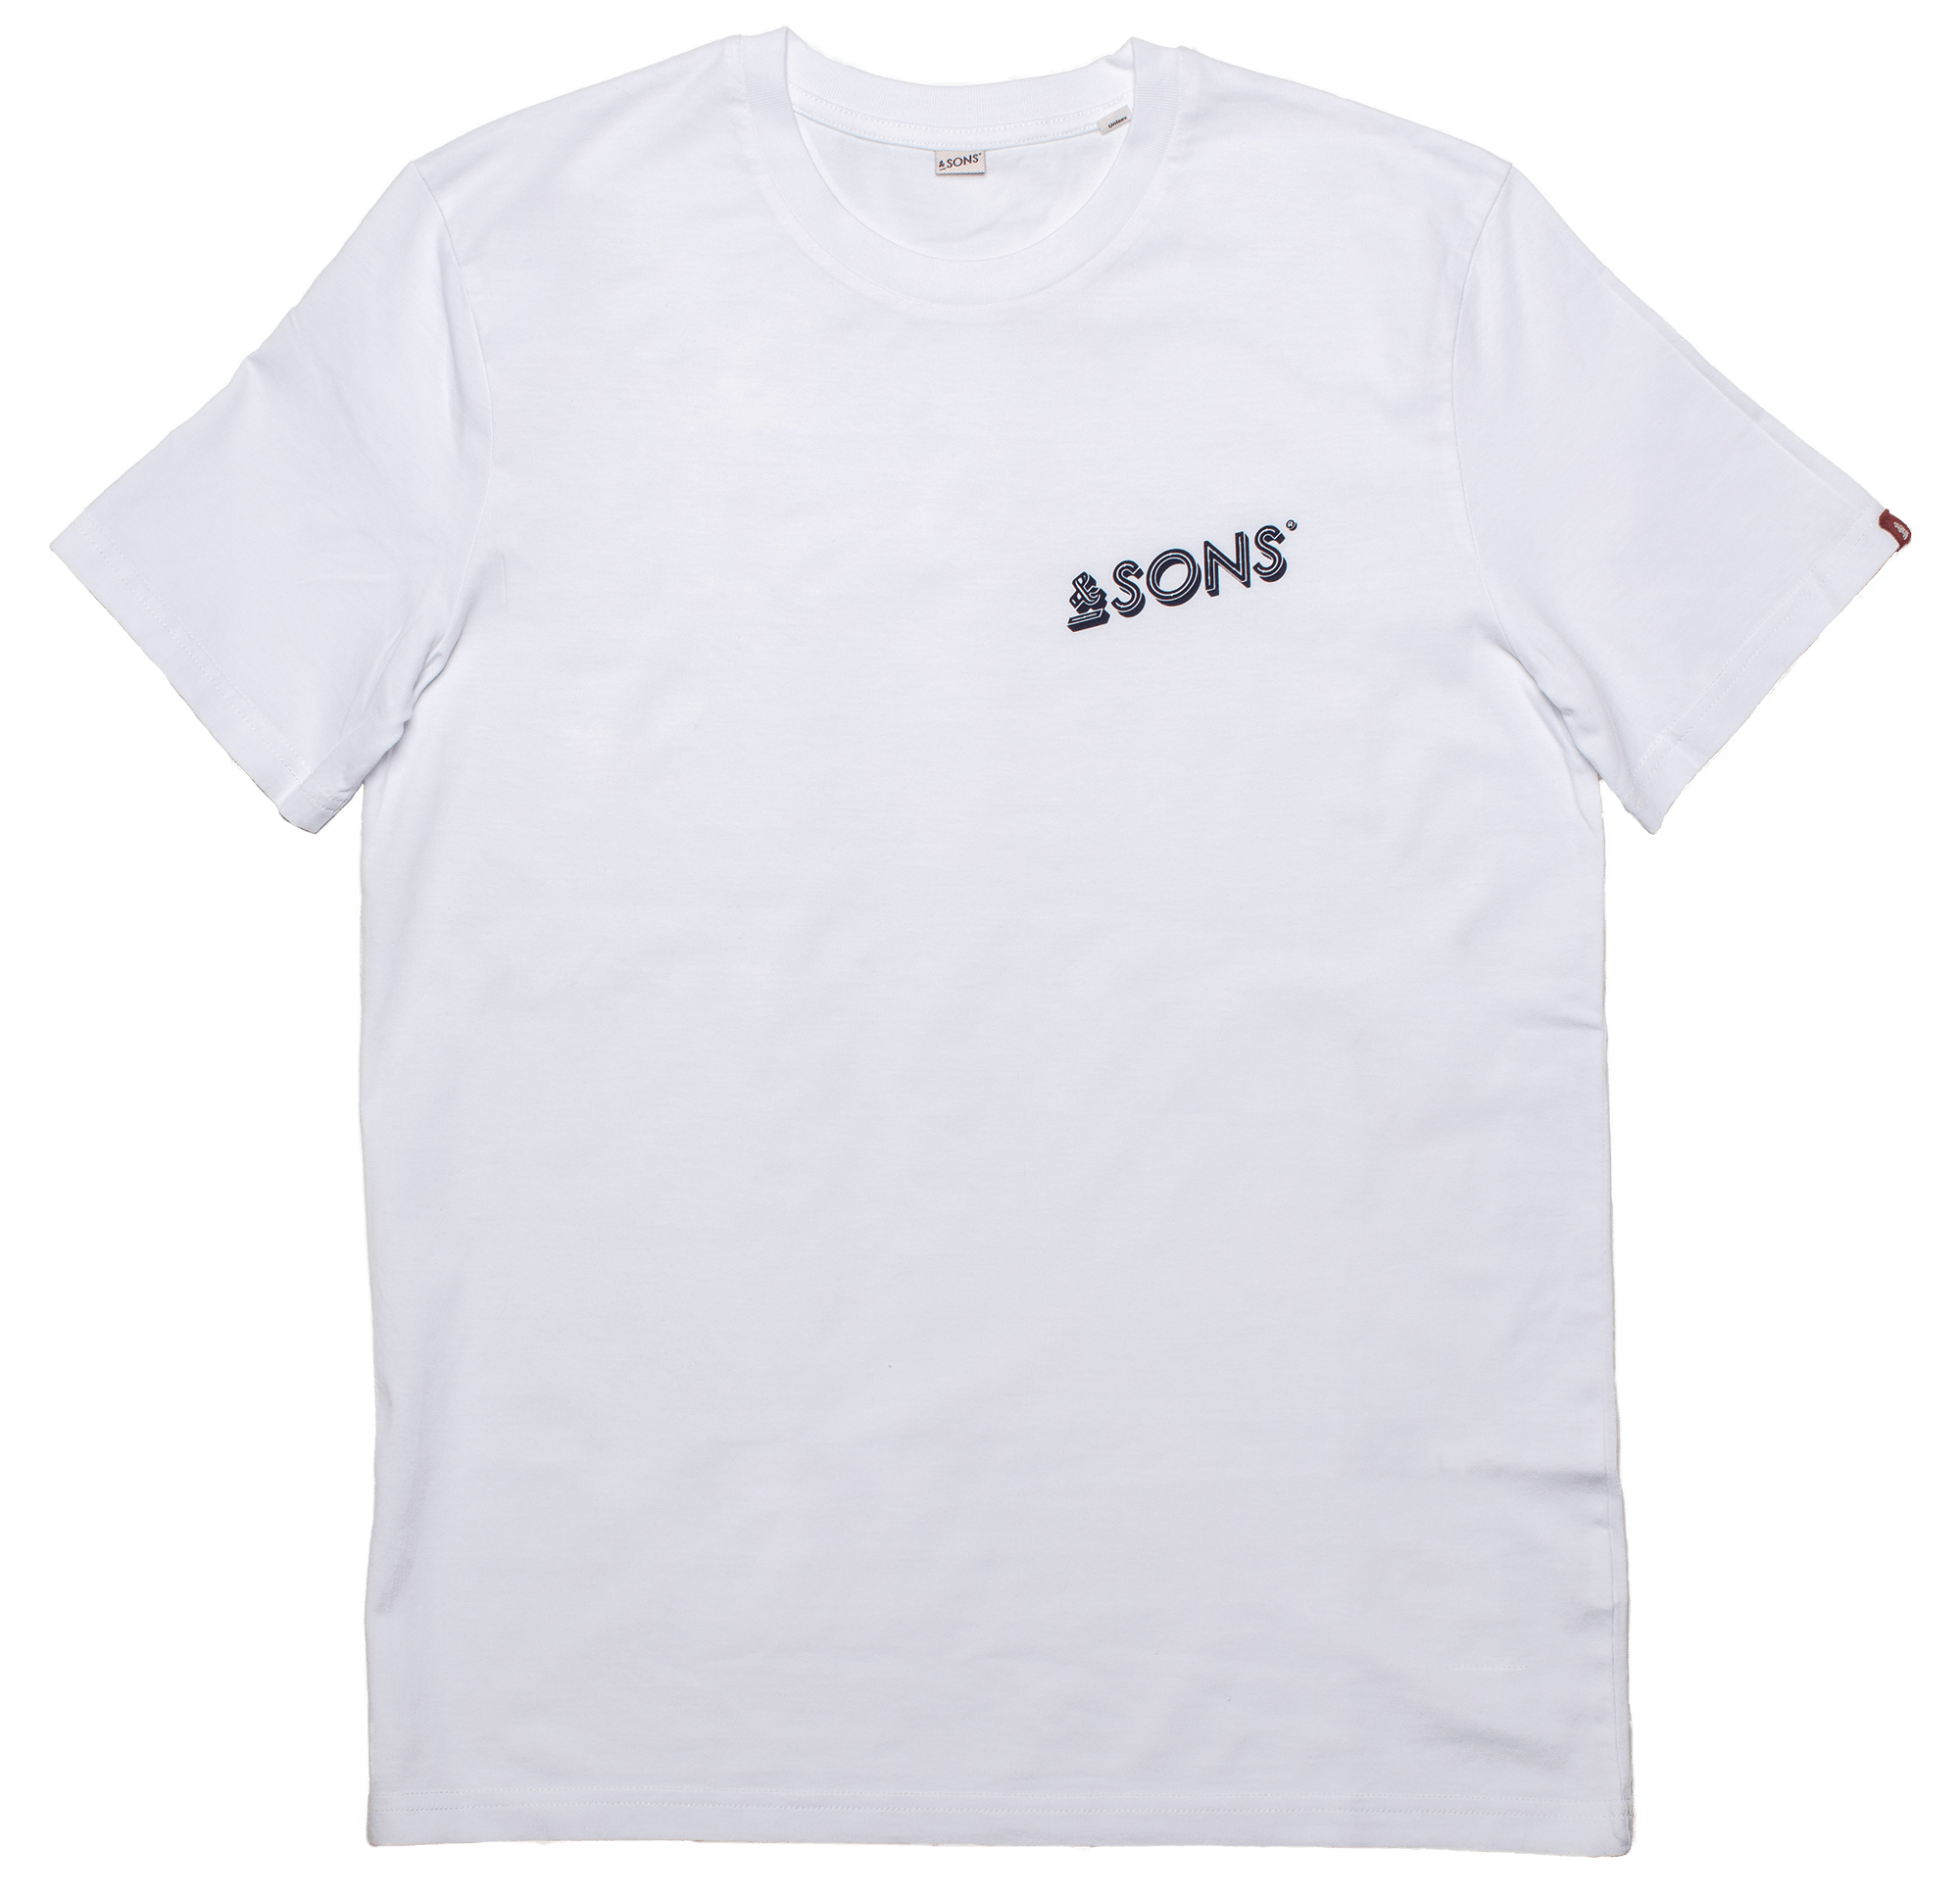 &SONS Logo Mens T-Shirt White